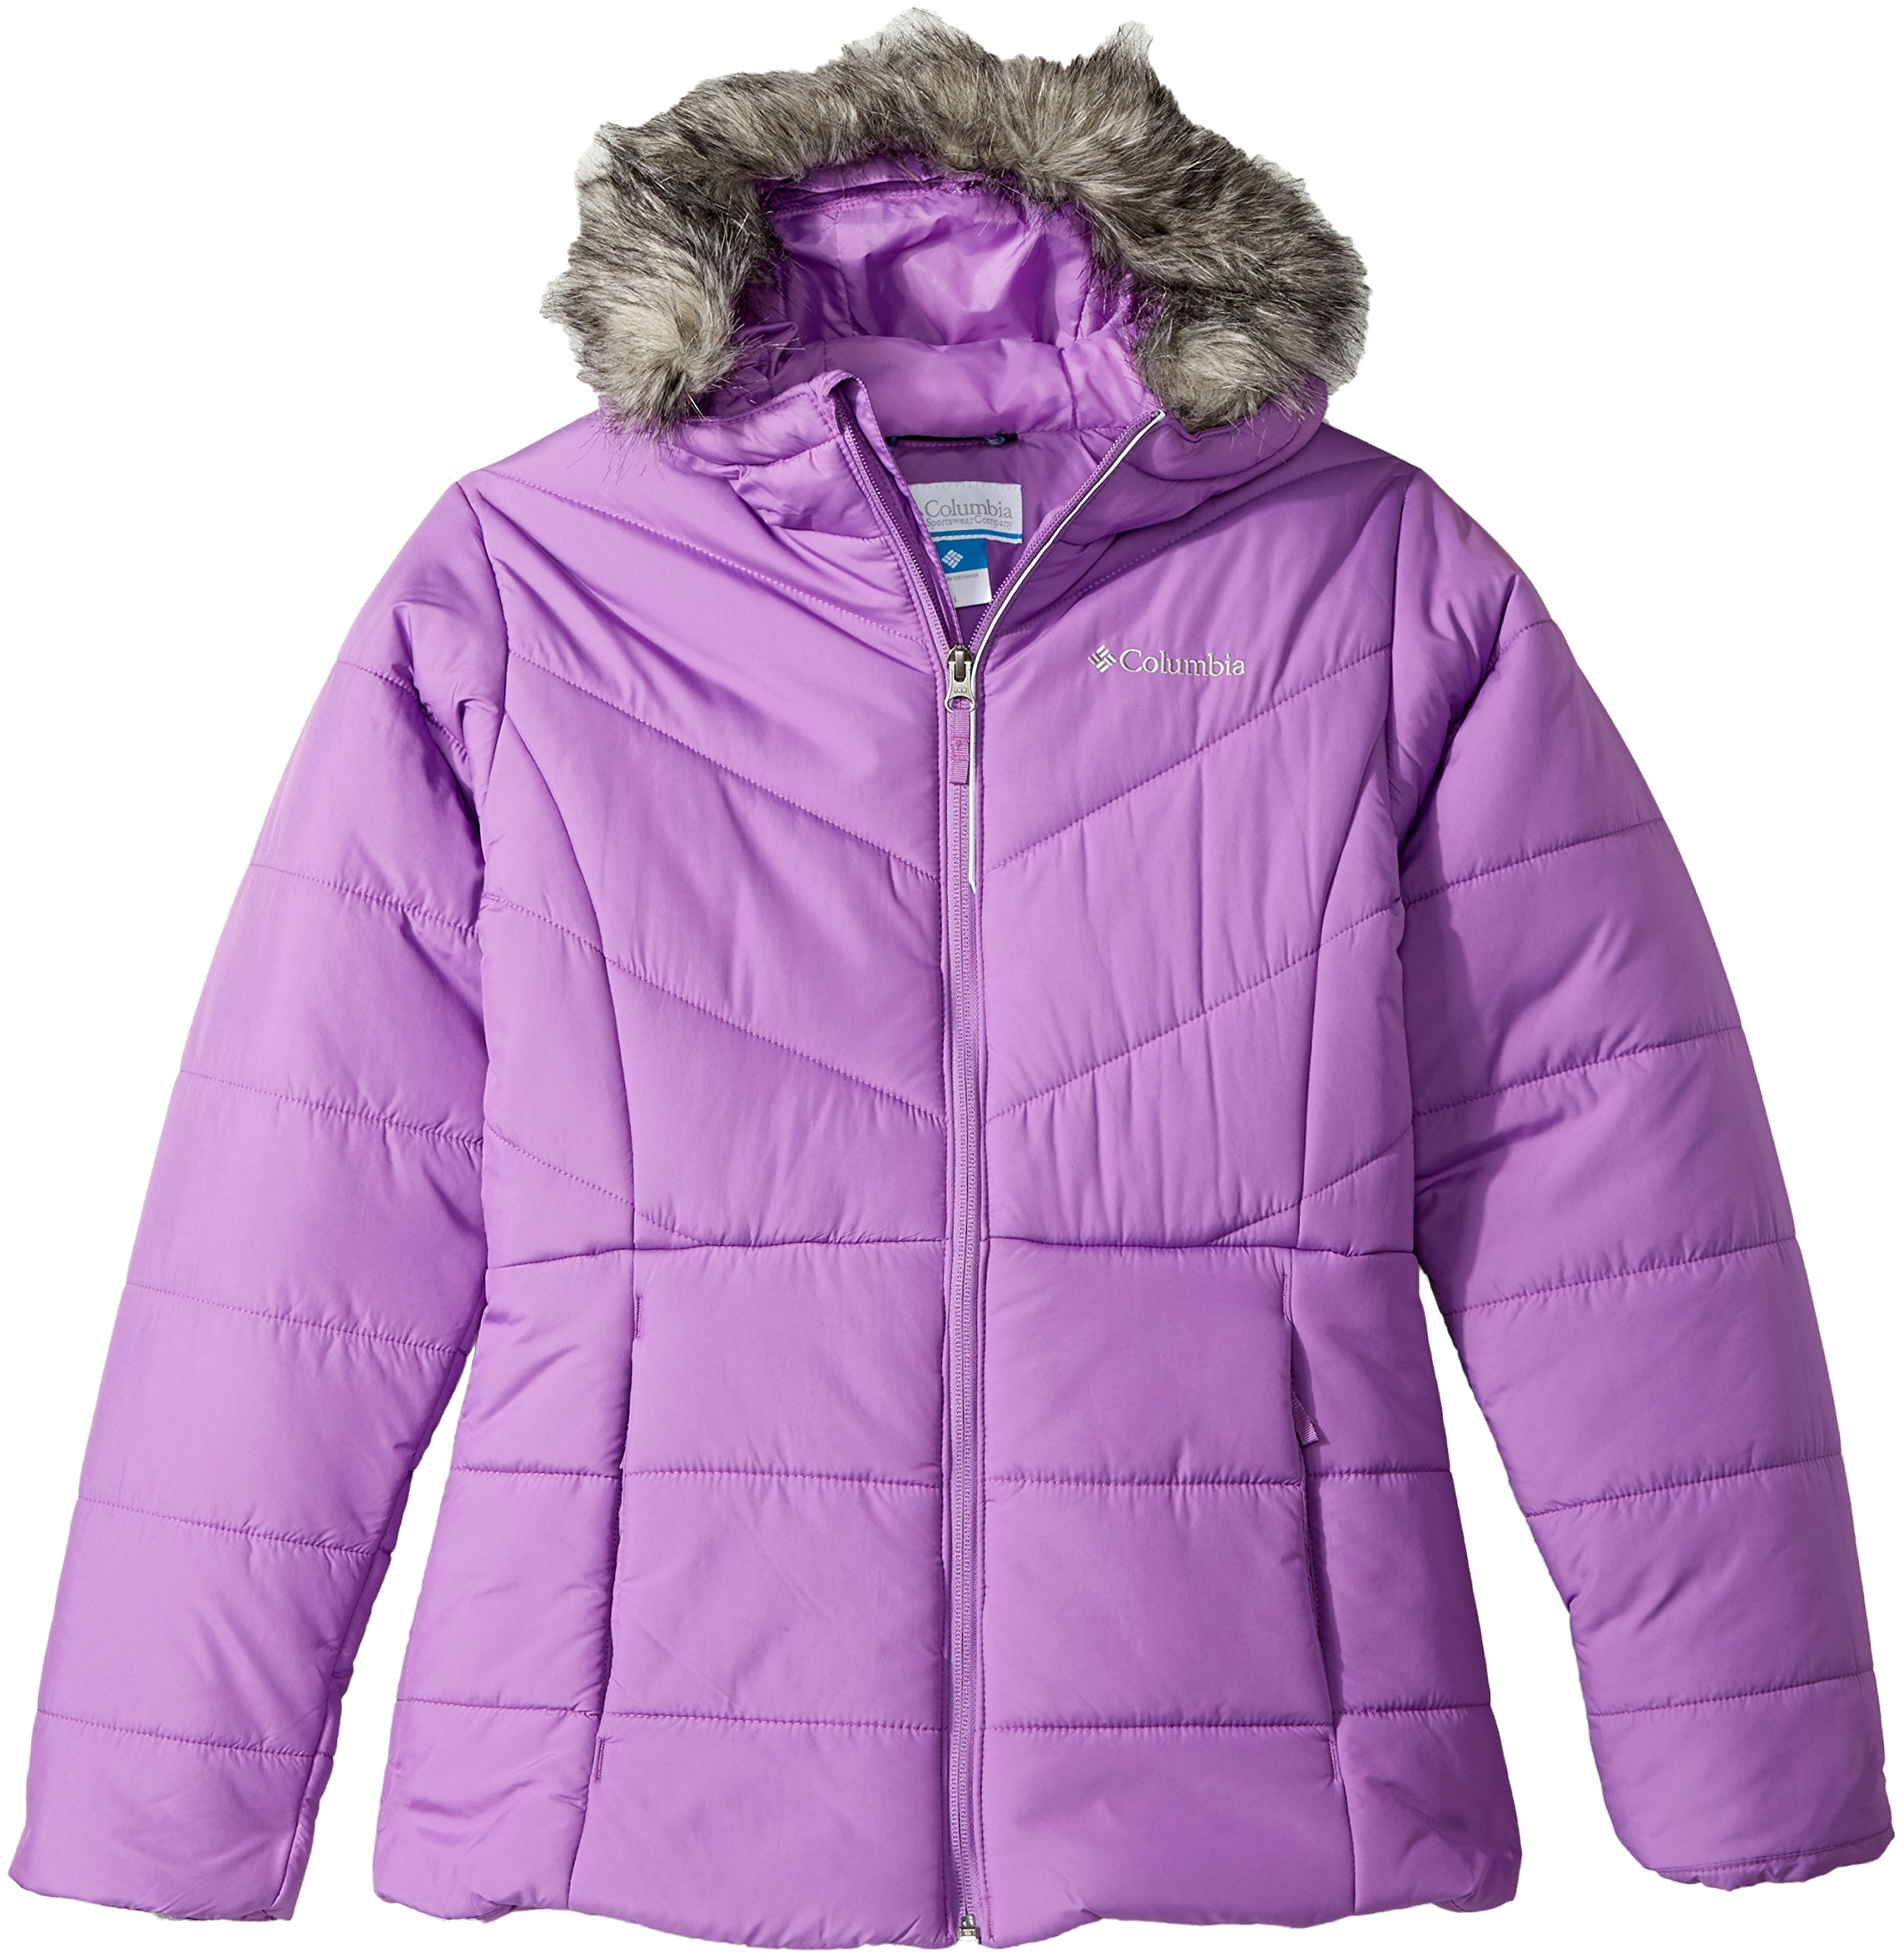 Columbia Big Girls' Katelyn Crest Jacket, Crown Jewel, Large